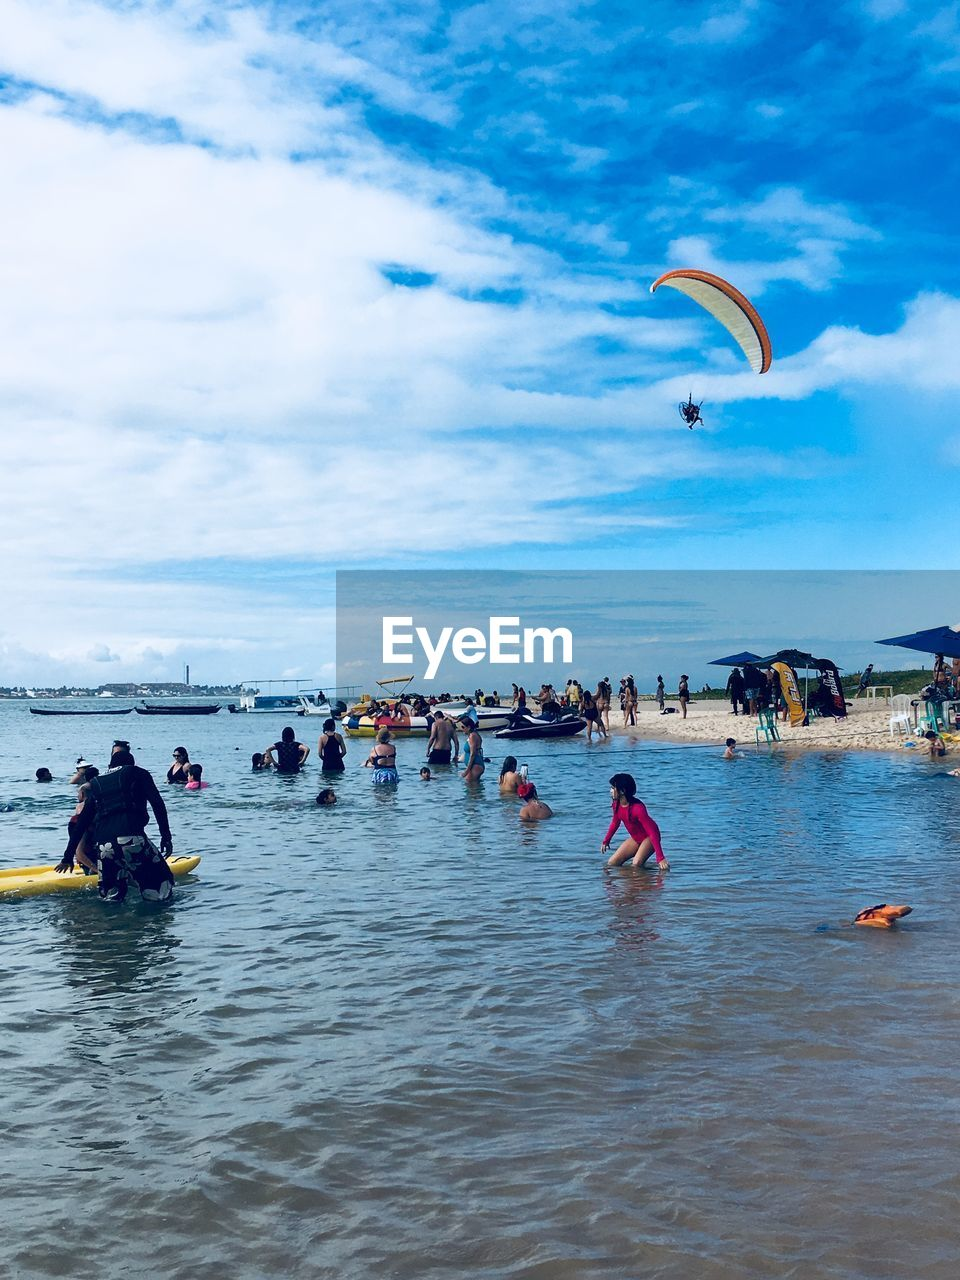 water, sky, real people, leisure activity, adventure, group of people, sport, sea, extreme sports, large group of people, lifestyles, cloud - sky, waterfront, crowd, day, nature, trip, vacations, holiday, outdoors, horizon over water, kiteboarding